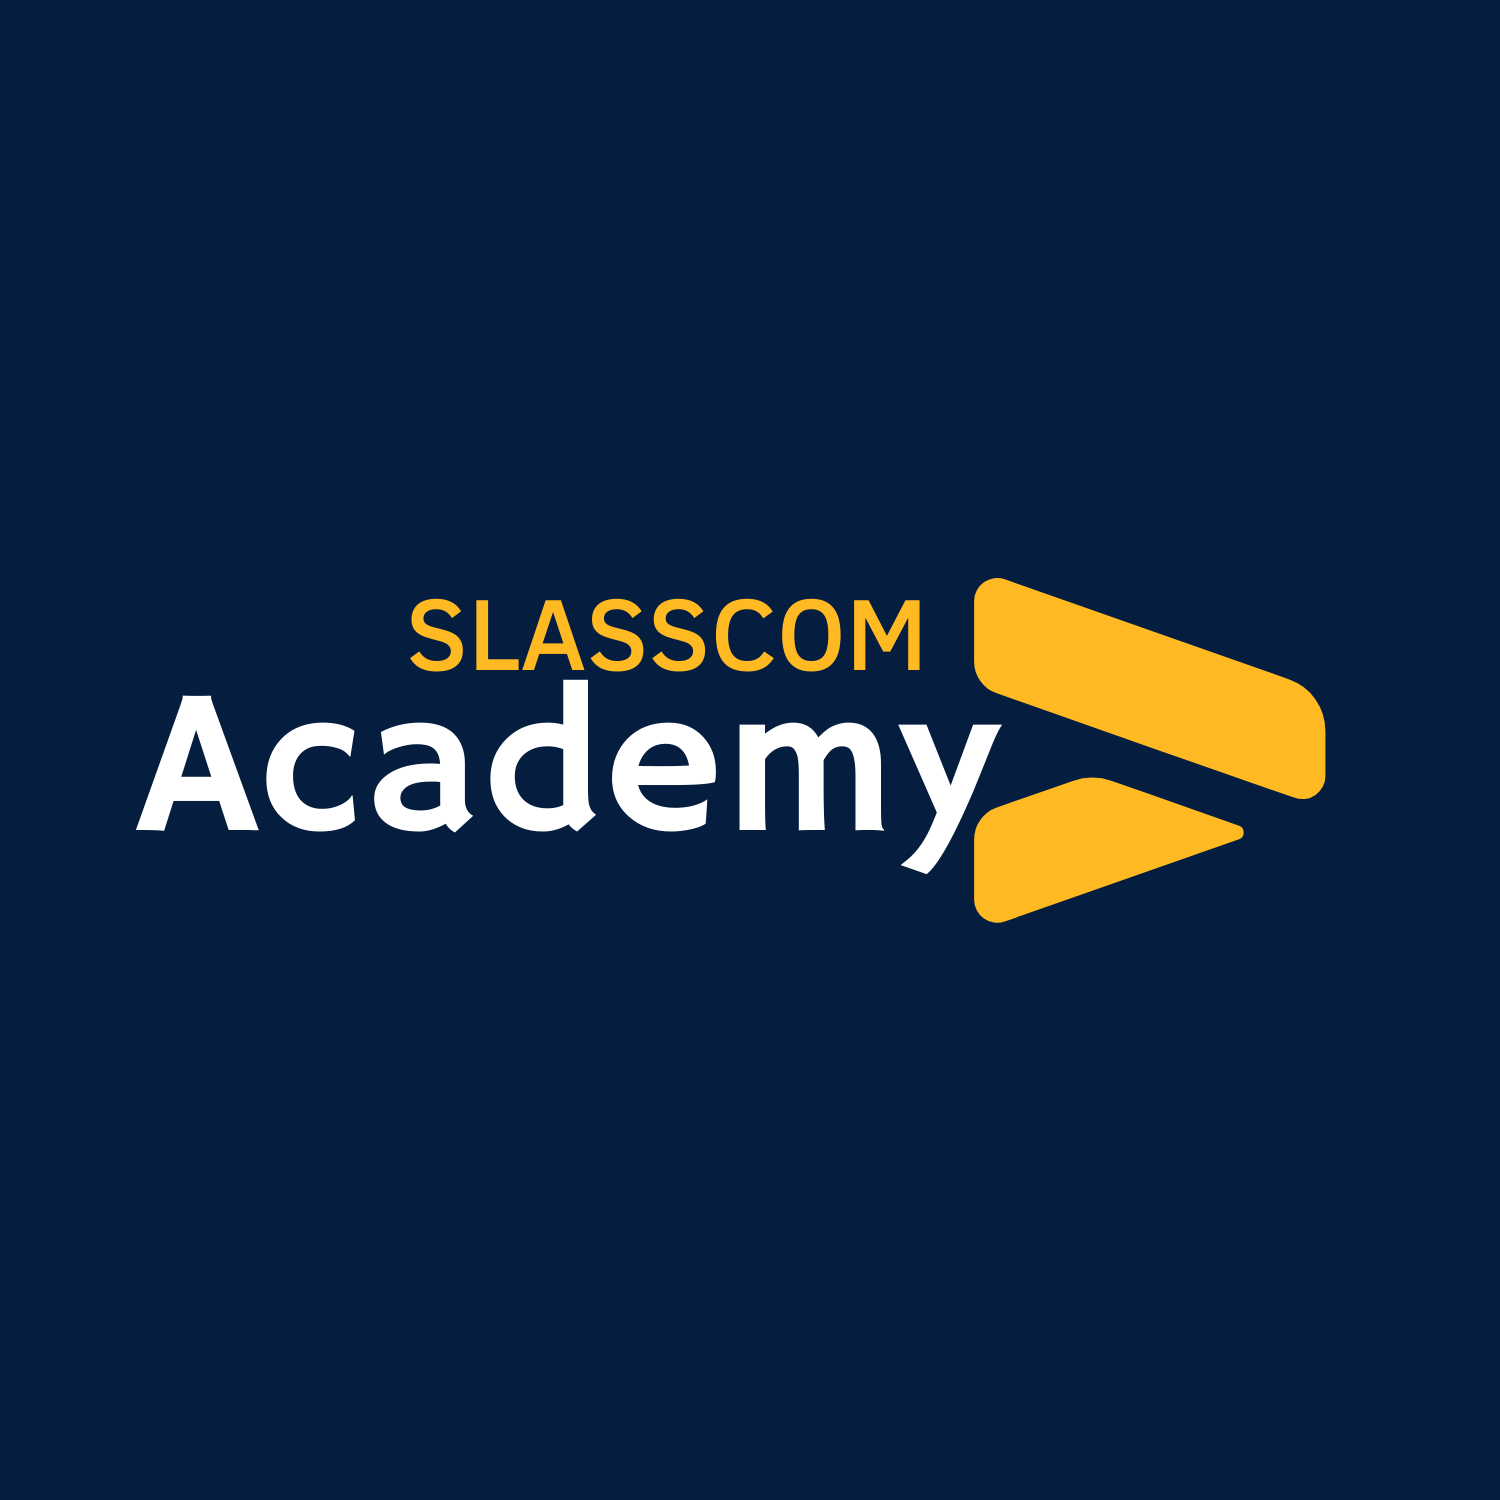 SLASSCOM embarks on yet another value driven venture, with the launch of the  SLASSCOM Academy